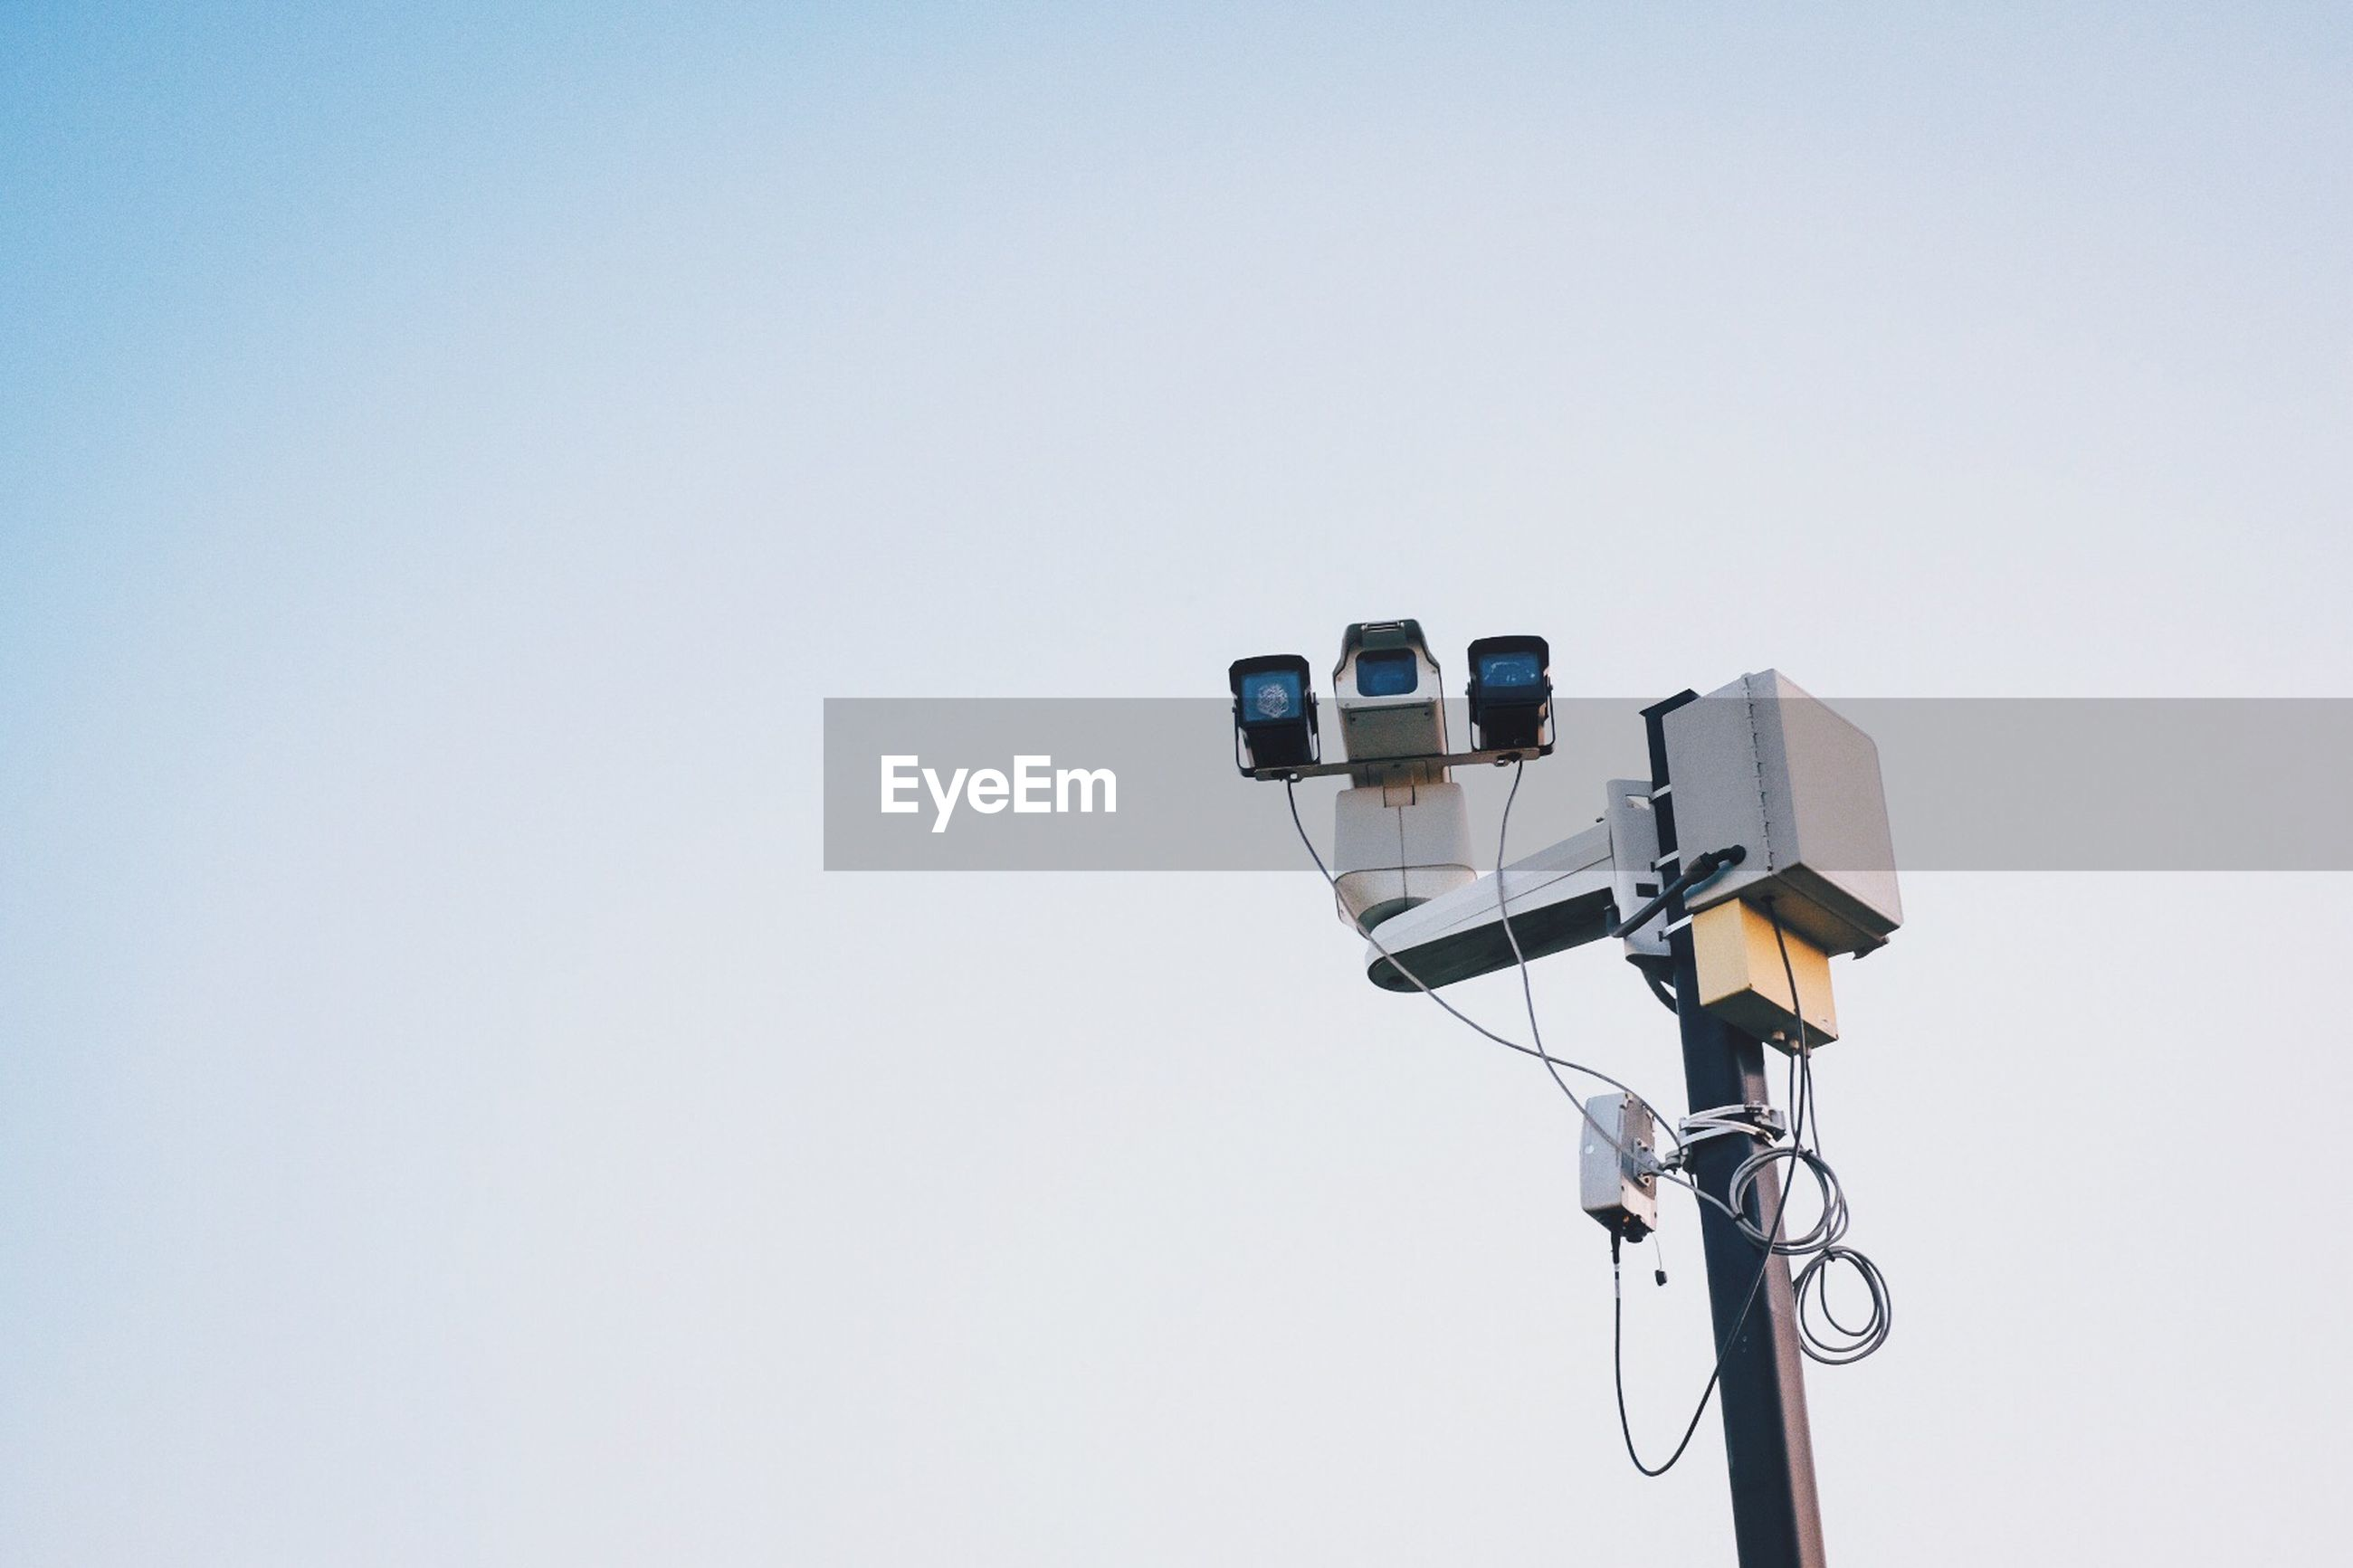 Low angle view of security camera on street light against clear sky